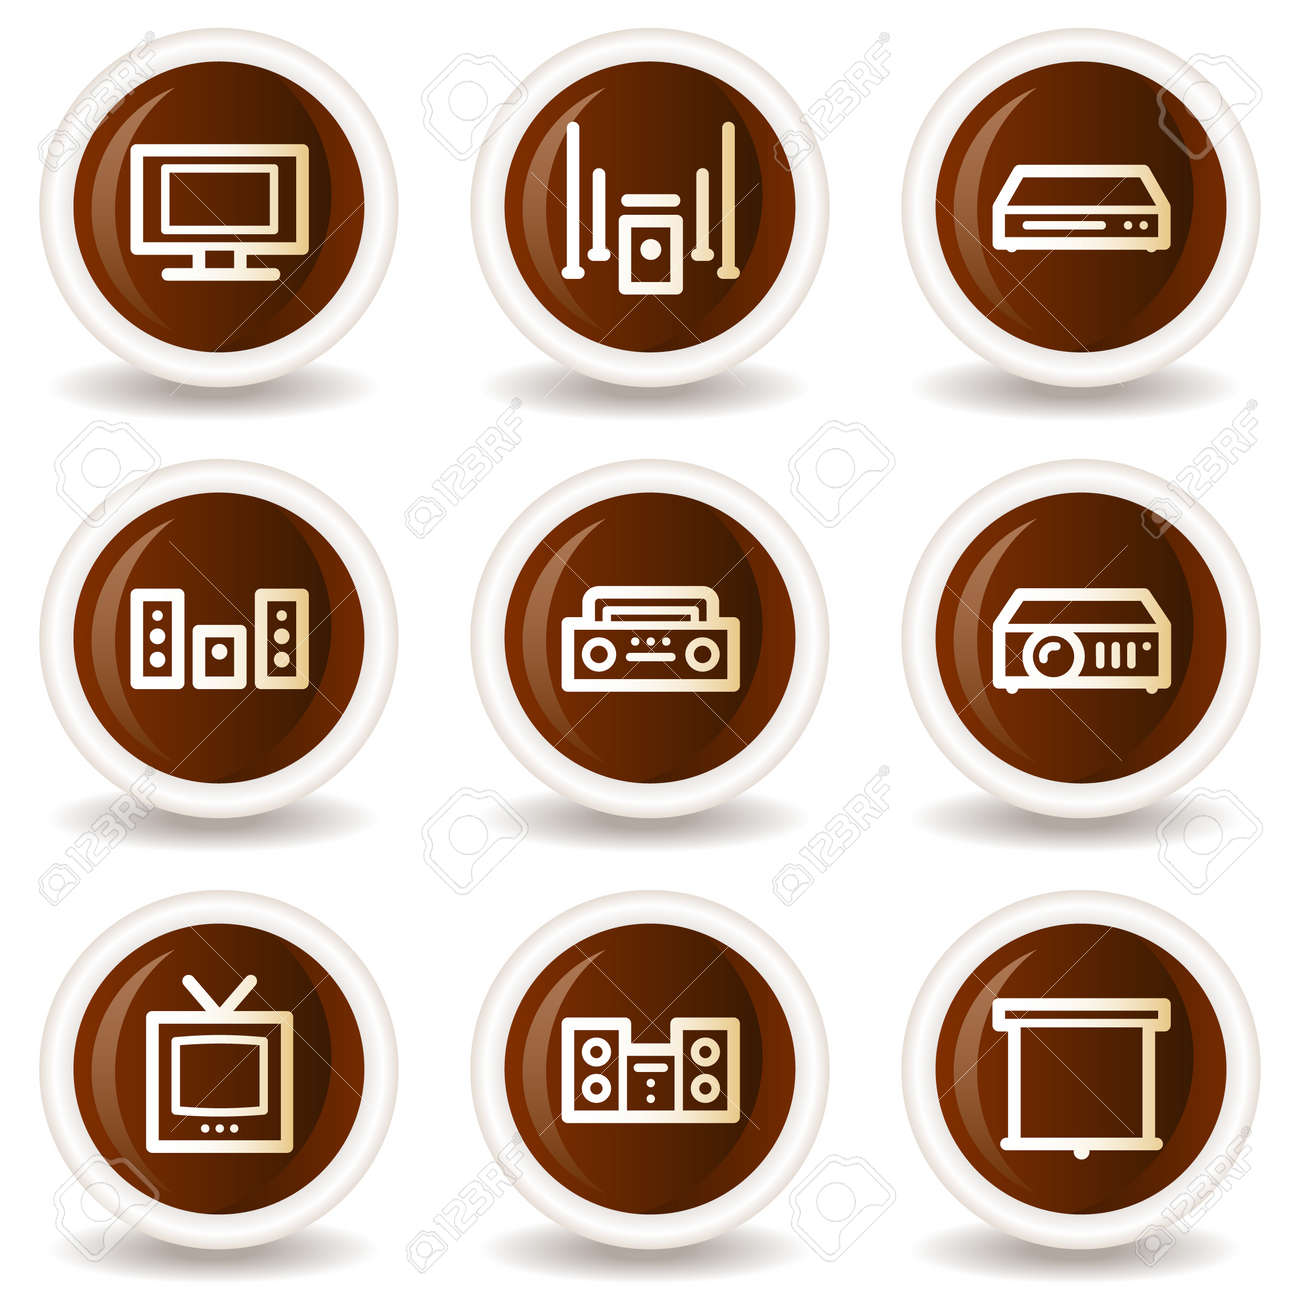 Audio video web icons, chocolate buttons Stock Vector - 20302118